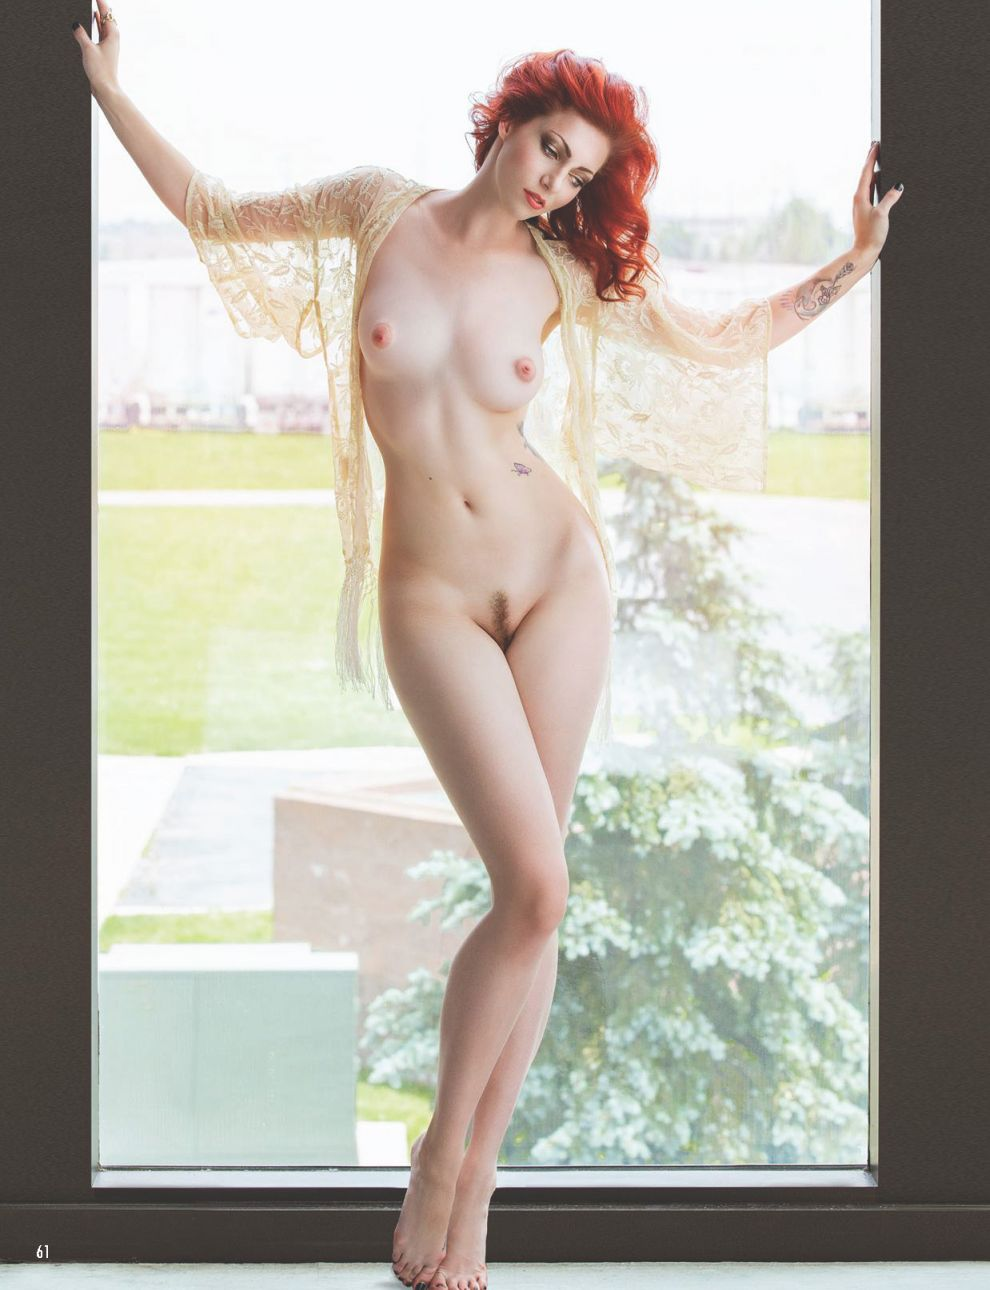 Arielita hot naked photoset nudes (83 photos), Cleavage Celebrity pictures